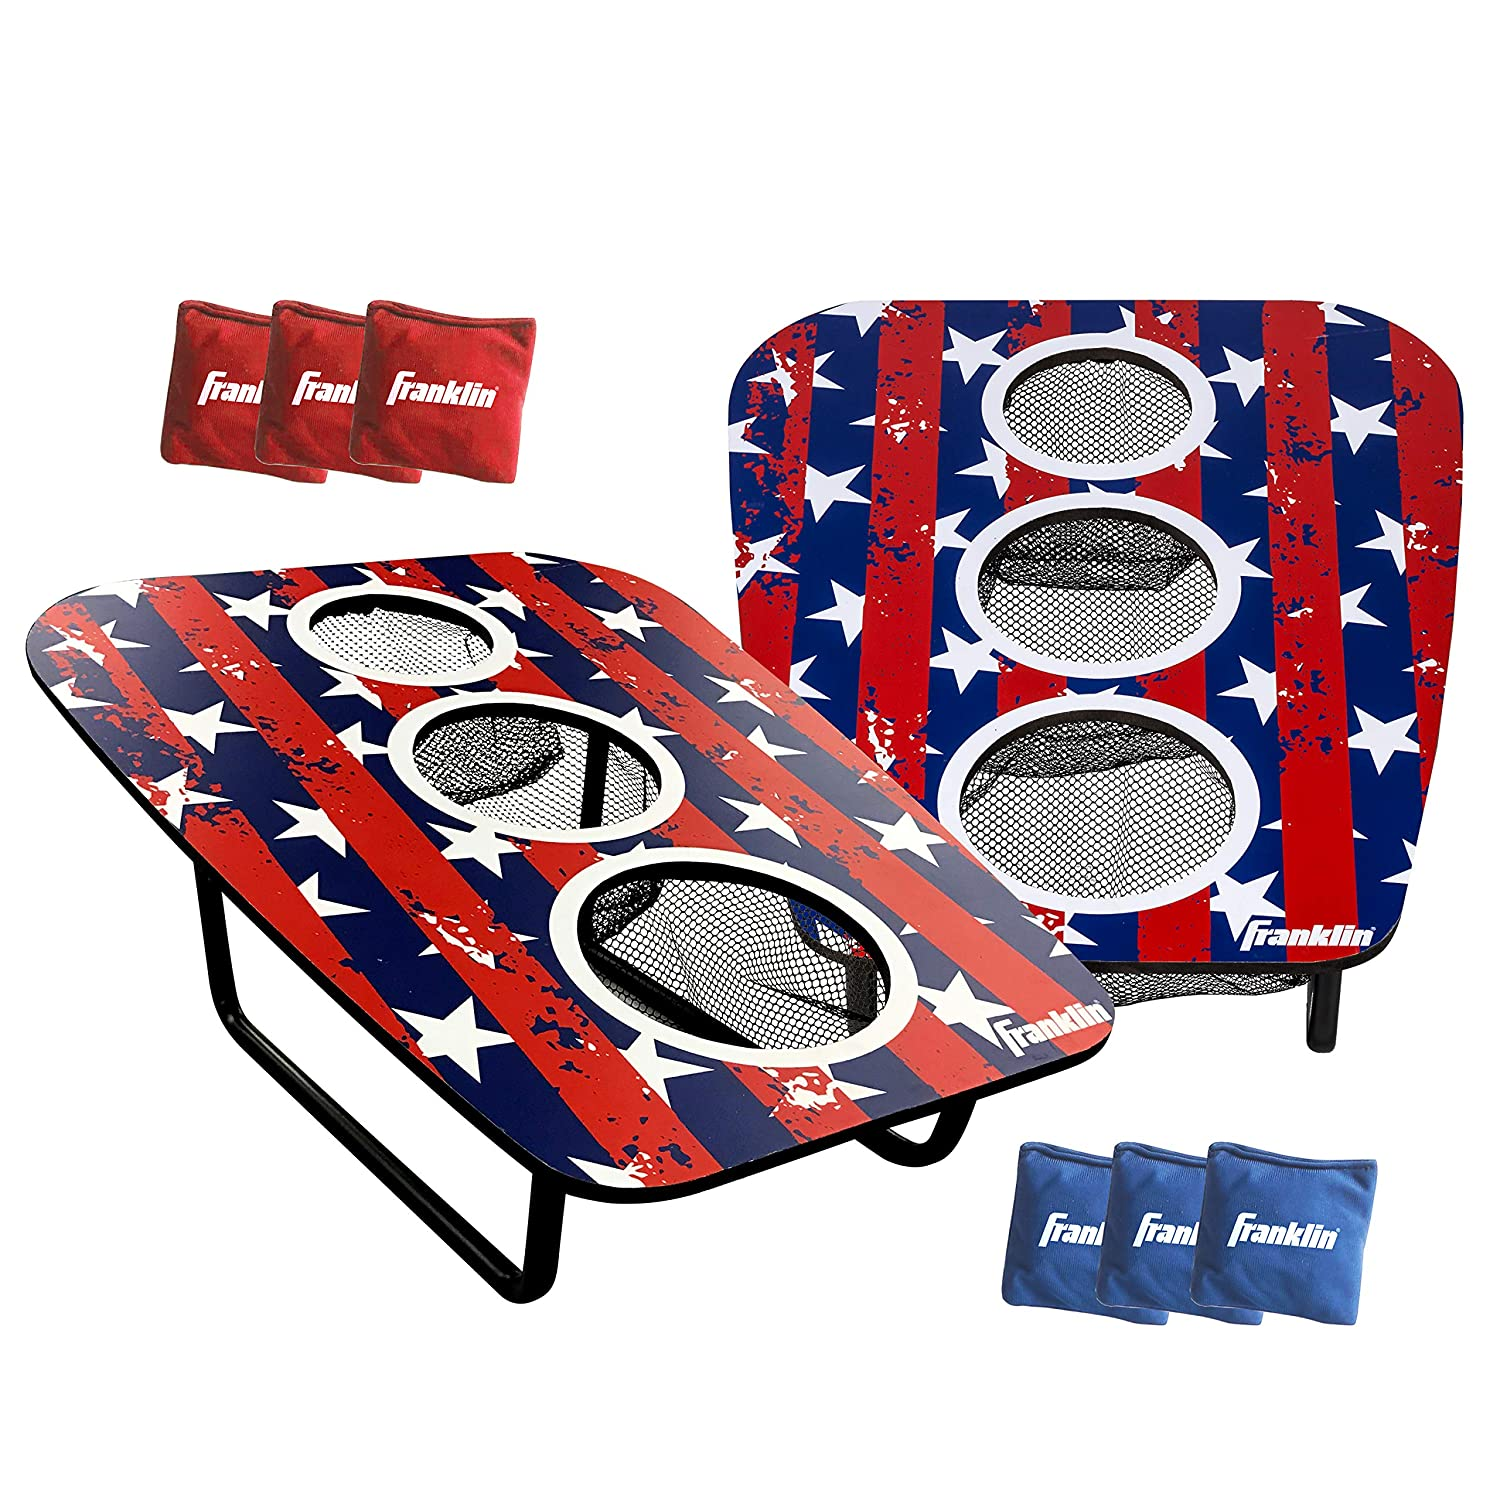 Franklin Sports Bean Bag Toss Yard Game – 3 Hole Cornhole Board Set – Red, White, and Blue – with 6 Bean Bags